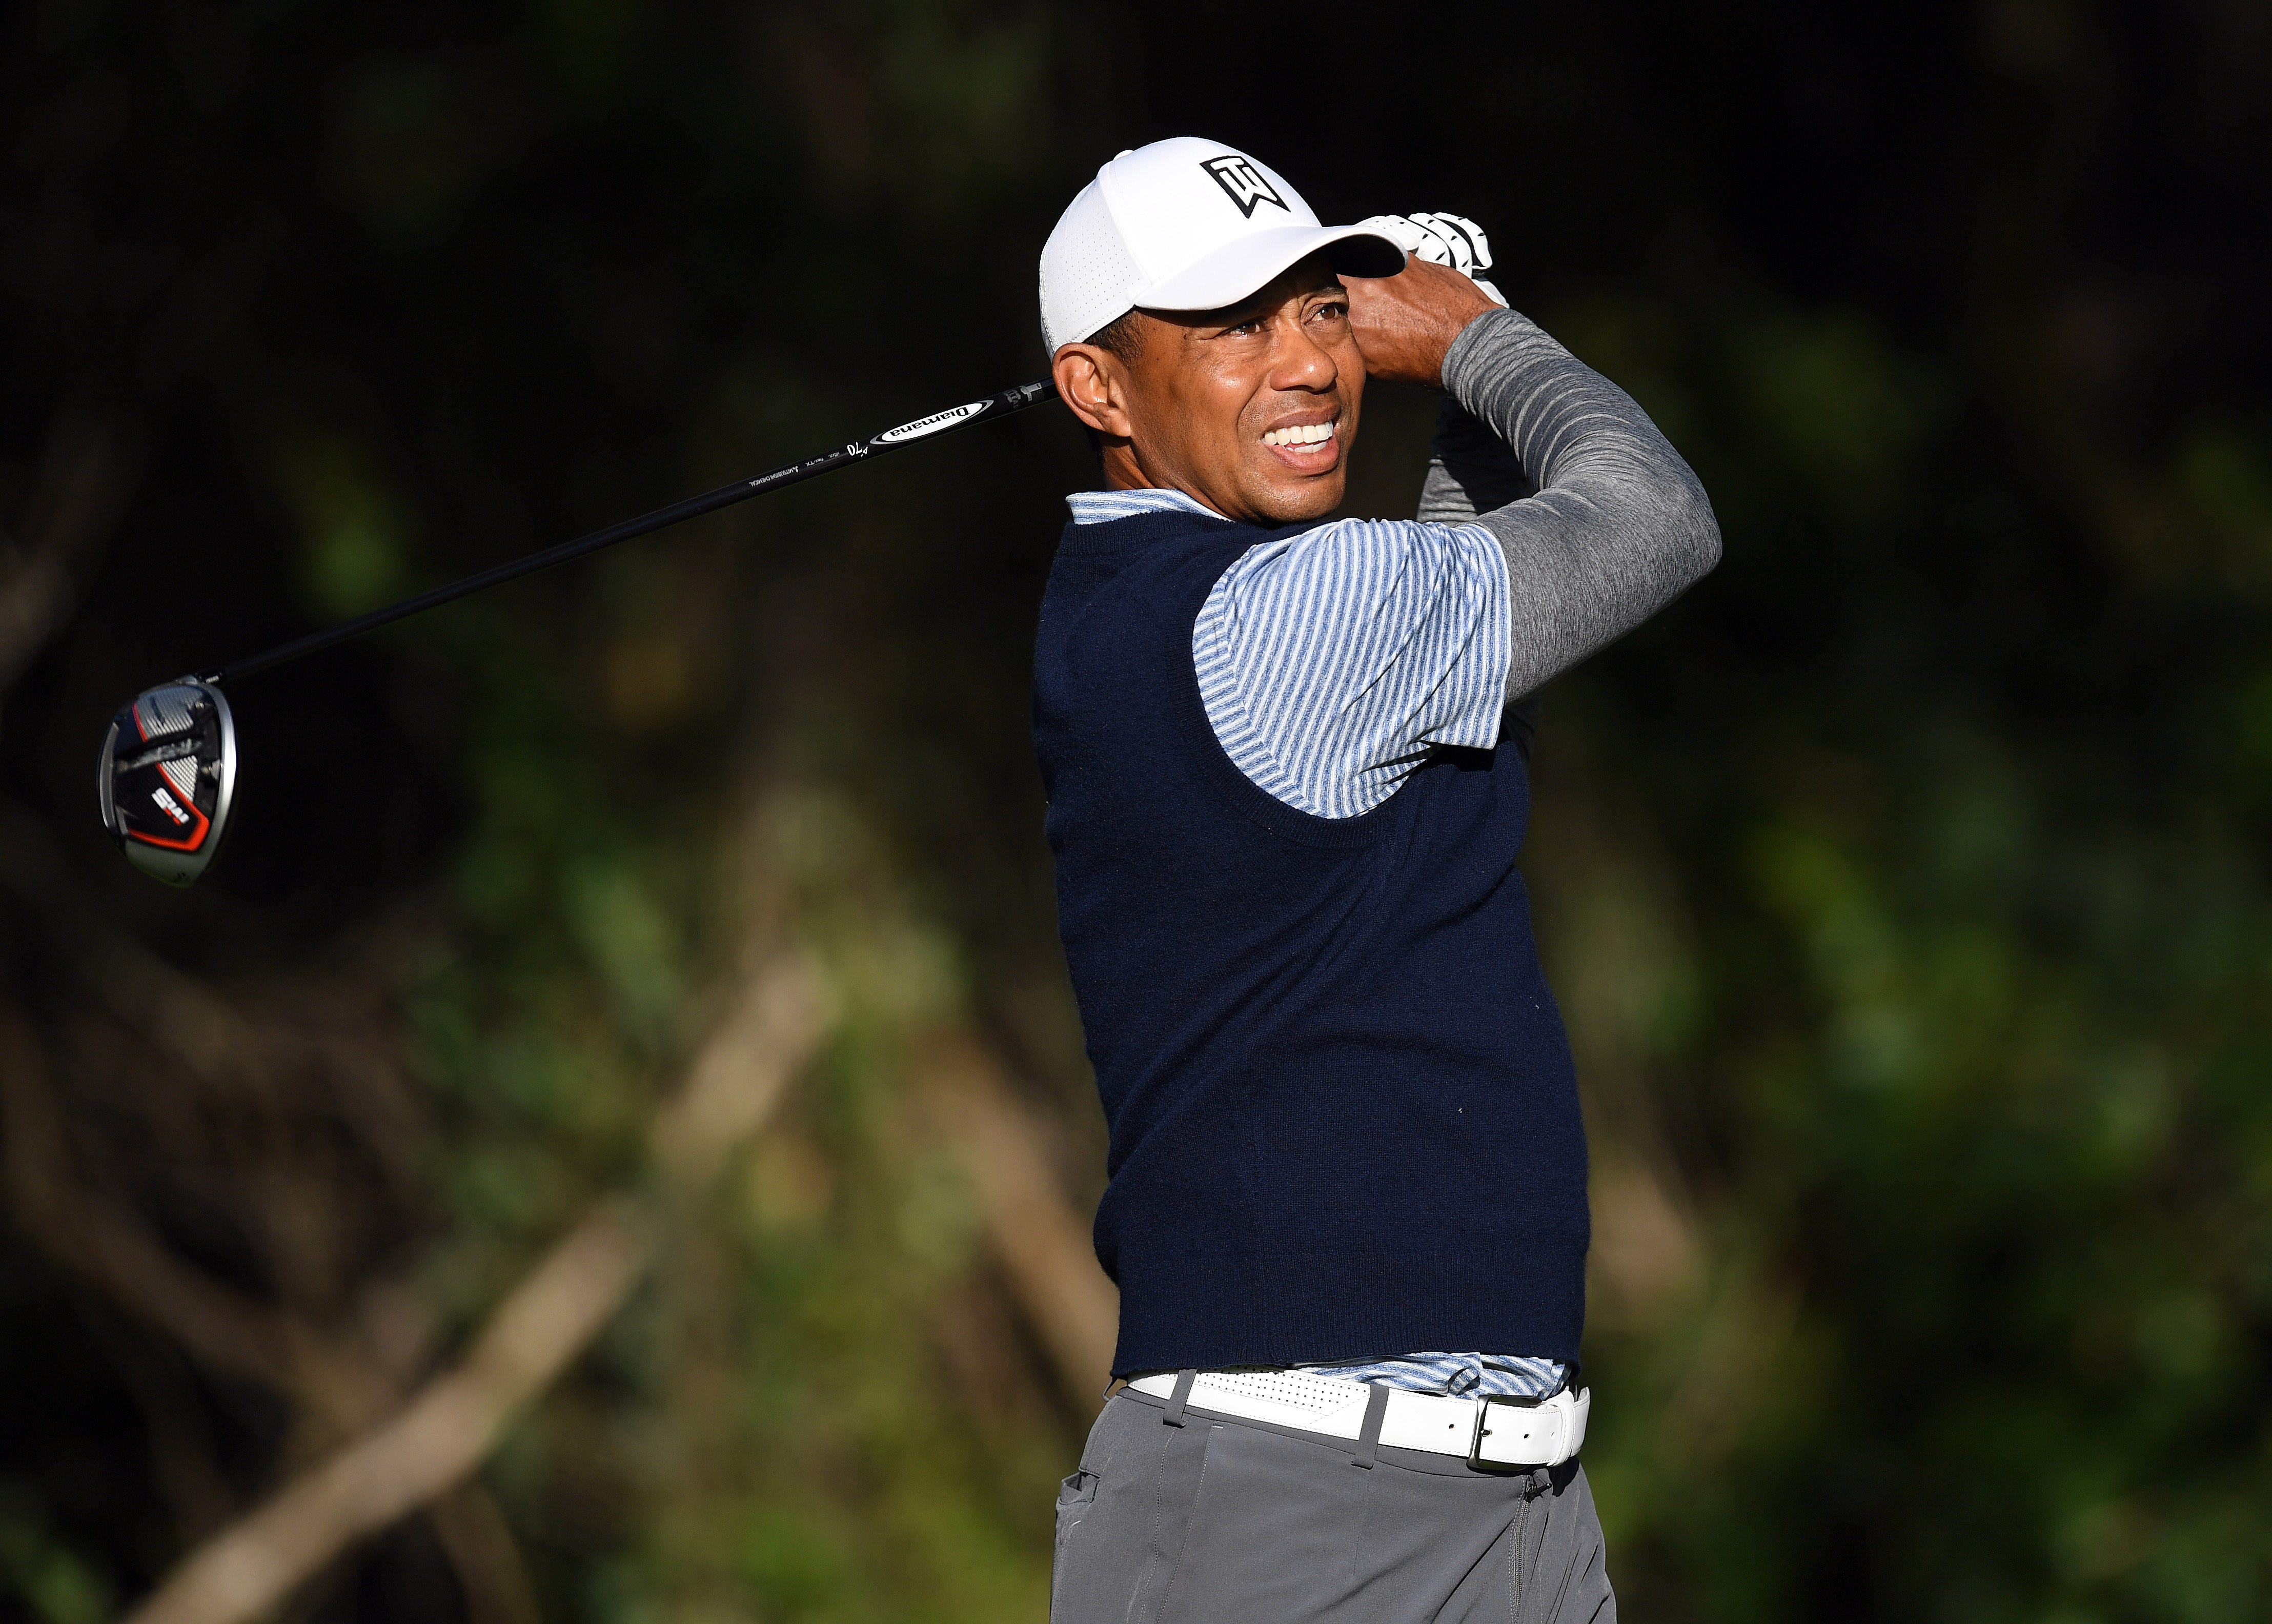 Tiger Woods lights up Riviera with incredible four-hole stretch to open third round